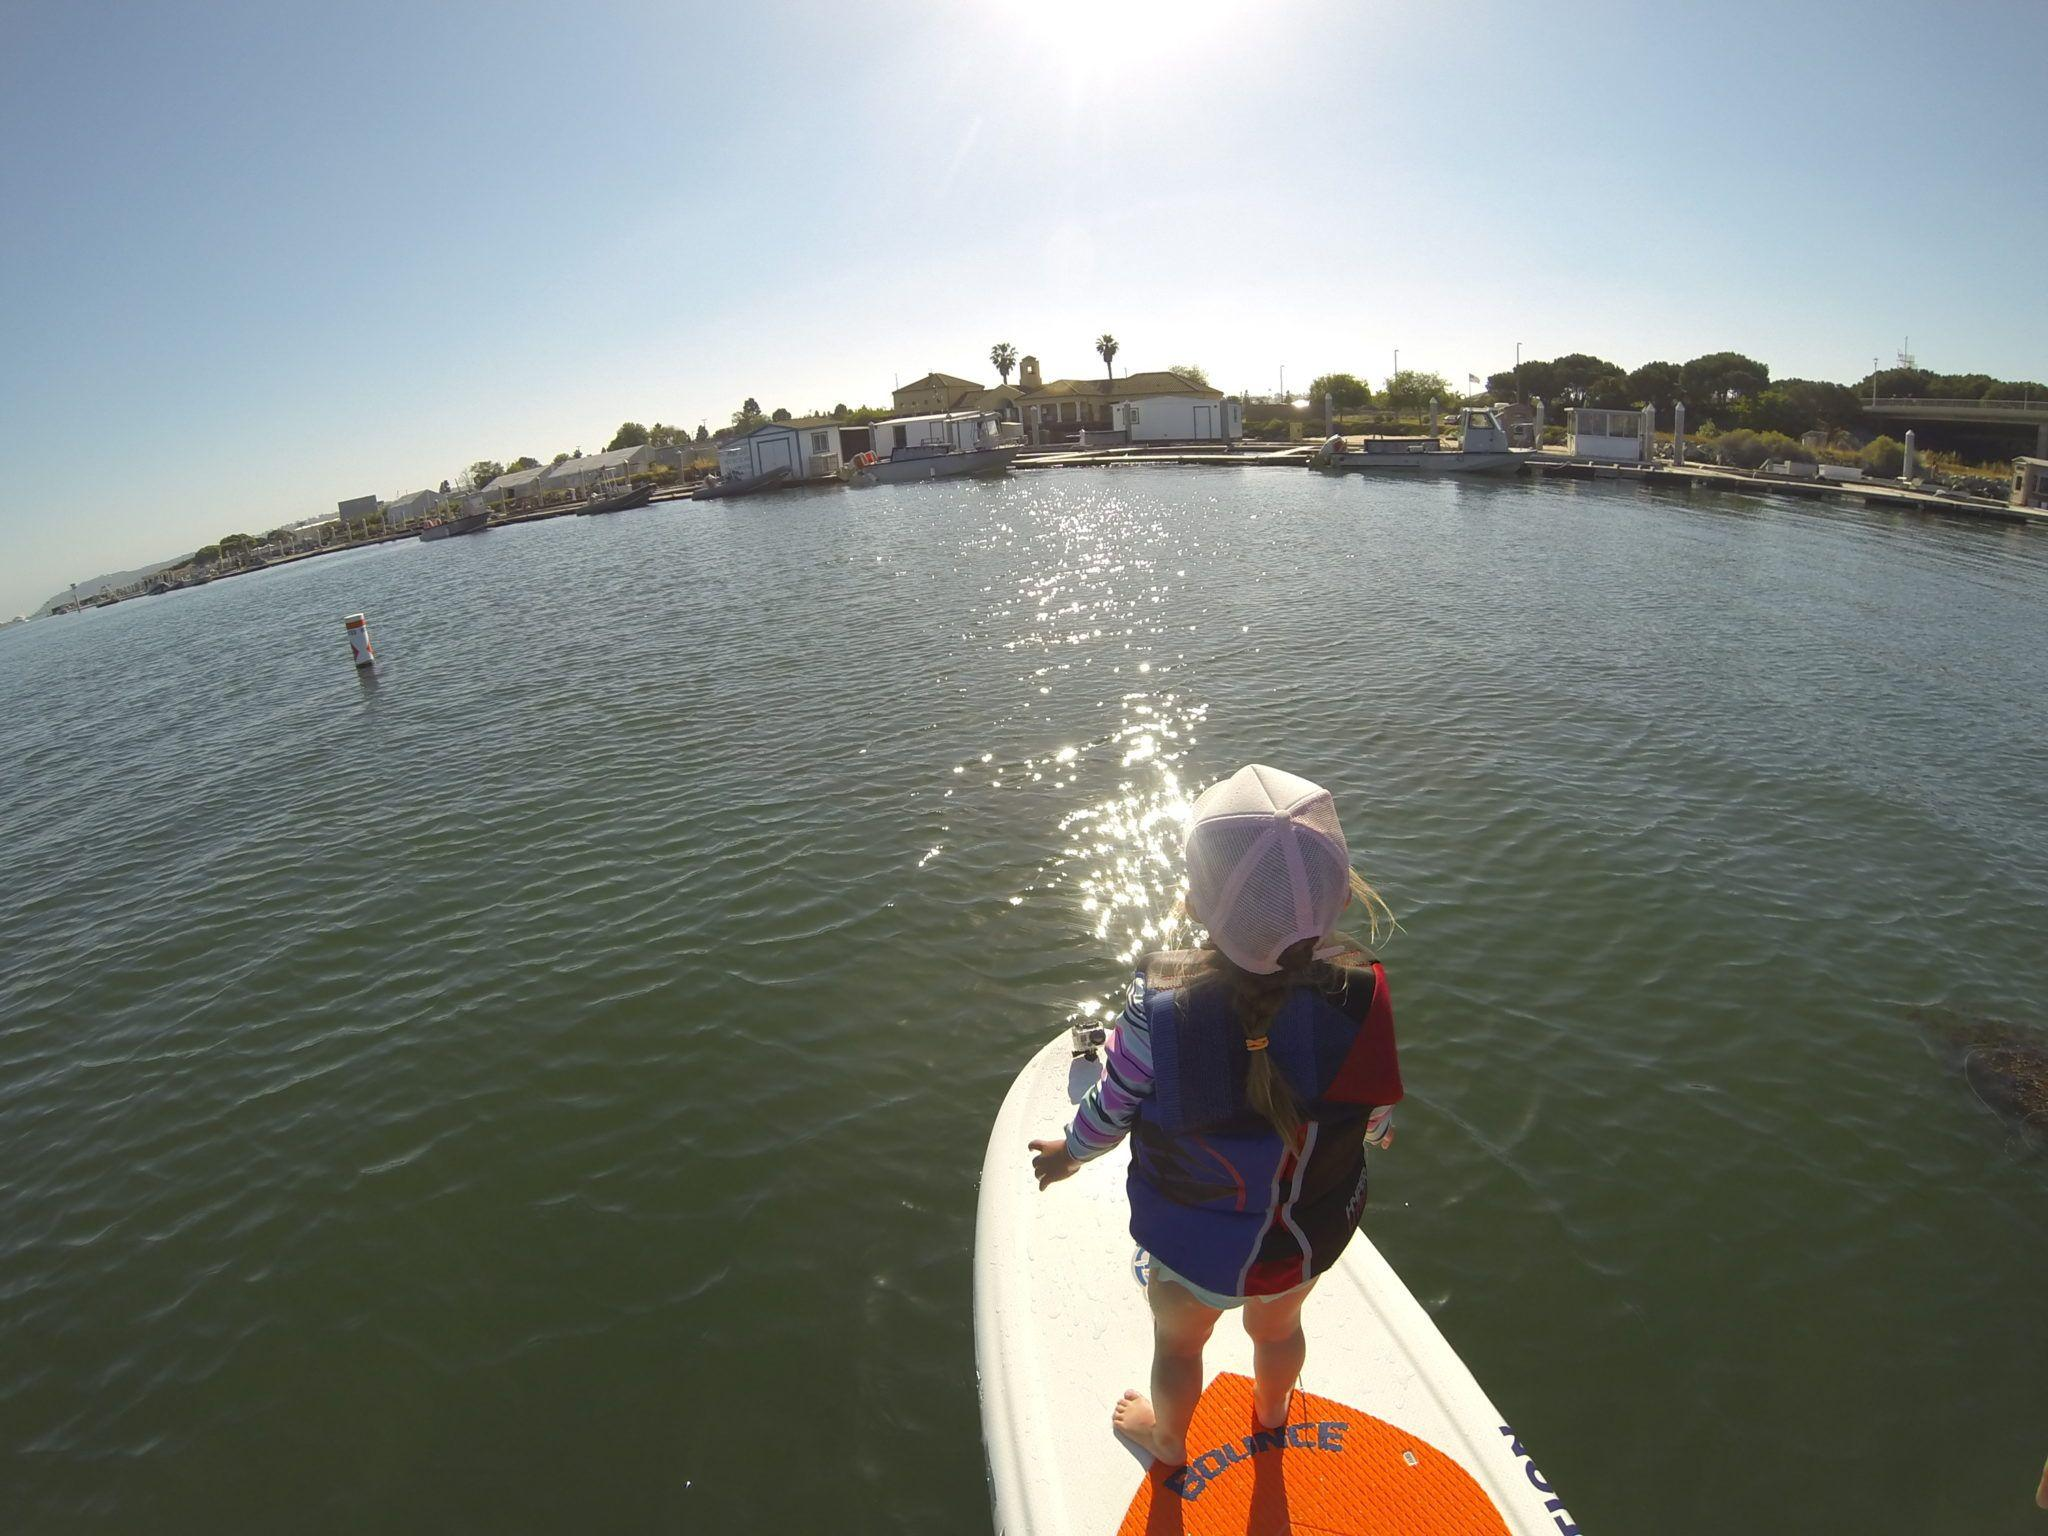 Kids Interested in SUP